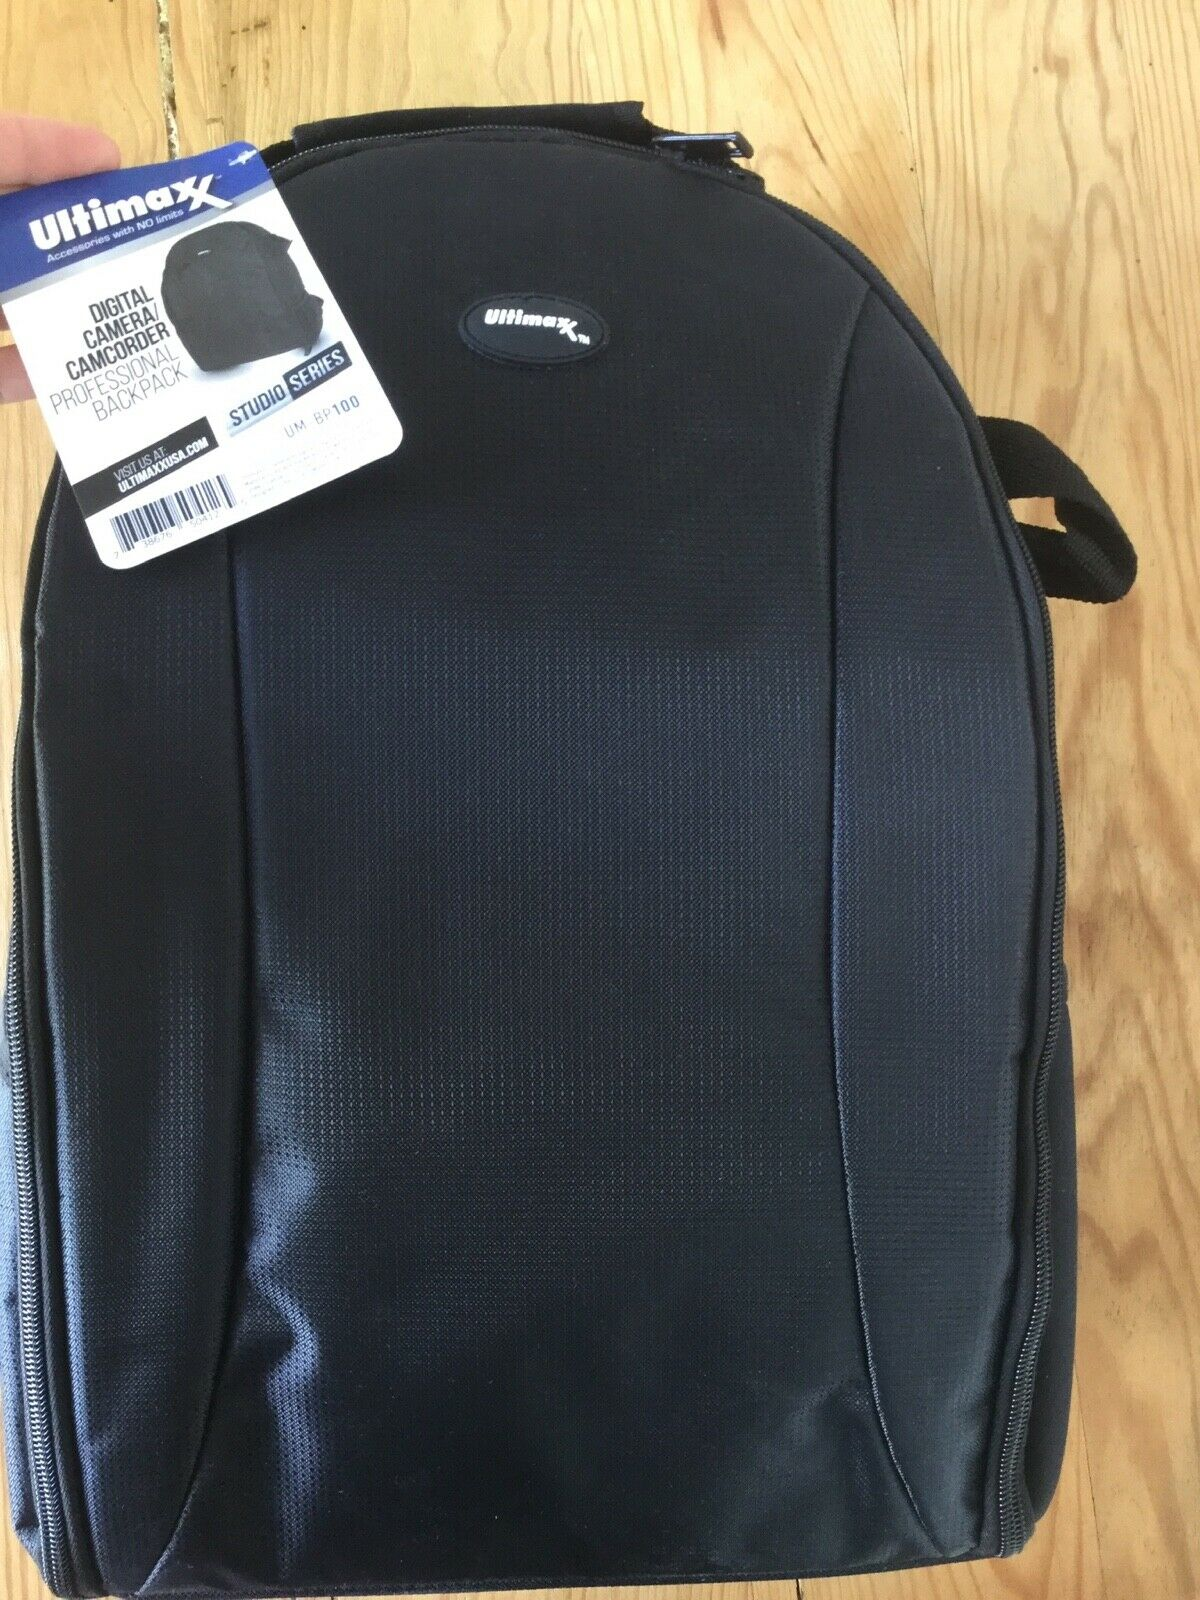 Ultimaxx Camera/Camcoder Proffesional Backpack UM- BP100 new with tags